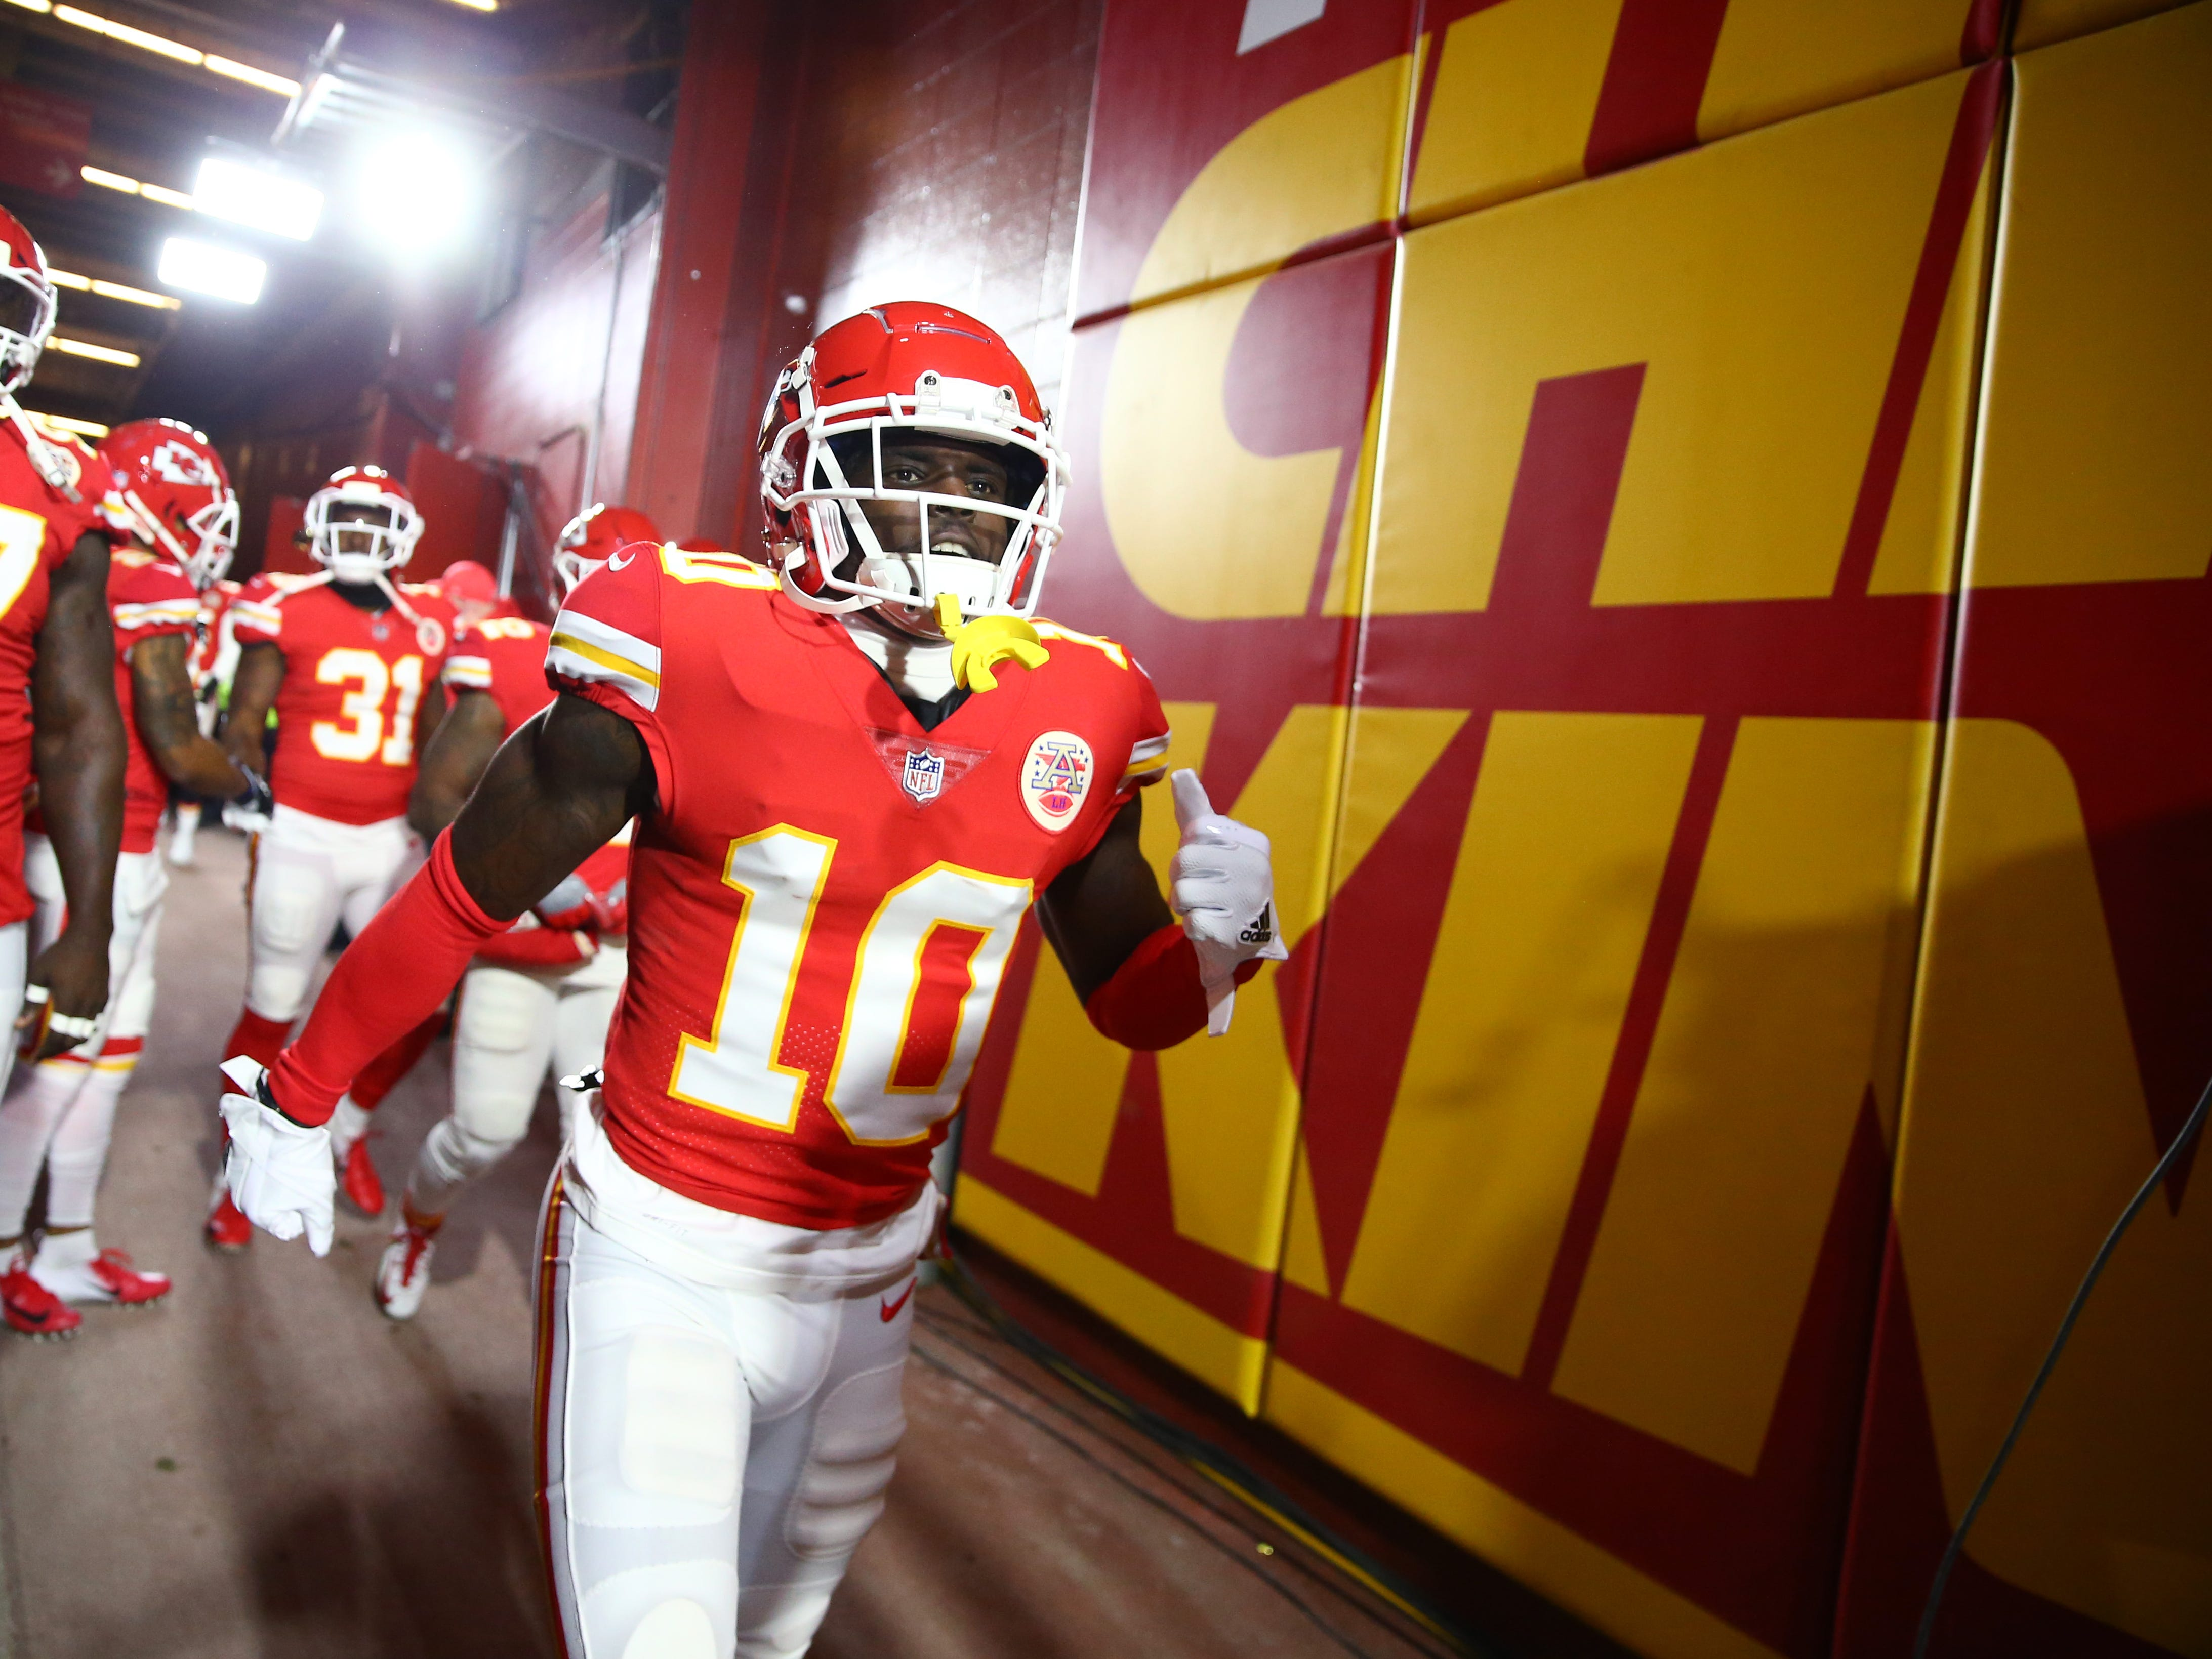 4. Chiefs (3): Remains to be seen how their free agency choices pan out and how well personnel fit Steve Spagnuolo's defense. WR Tyreek Hill's legal situation bears close monitoring.